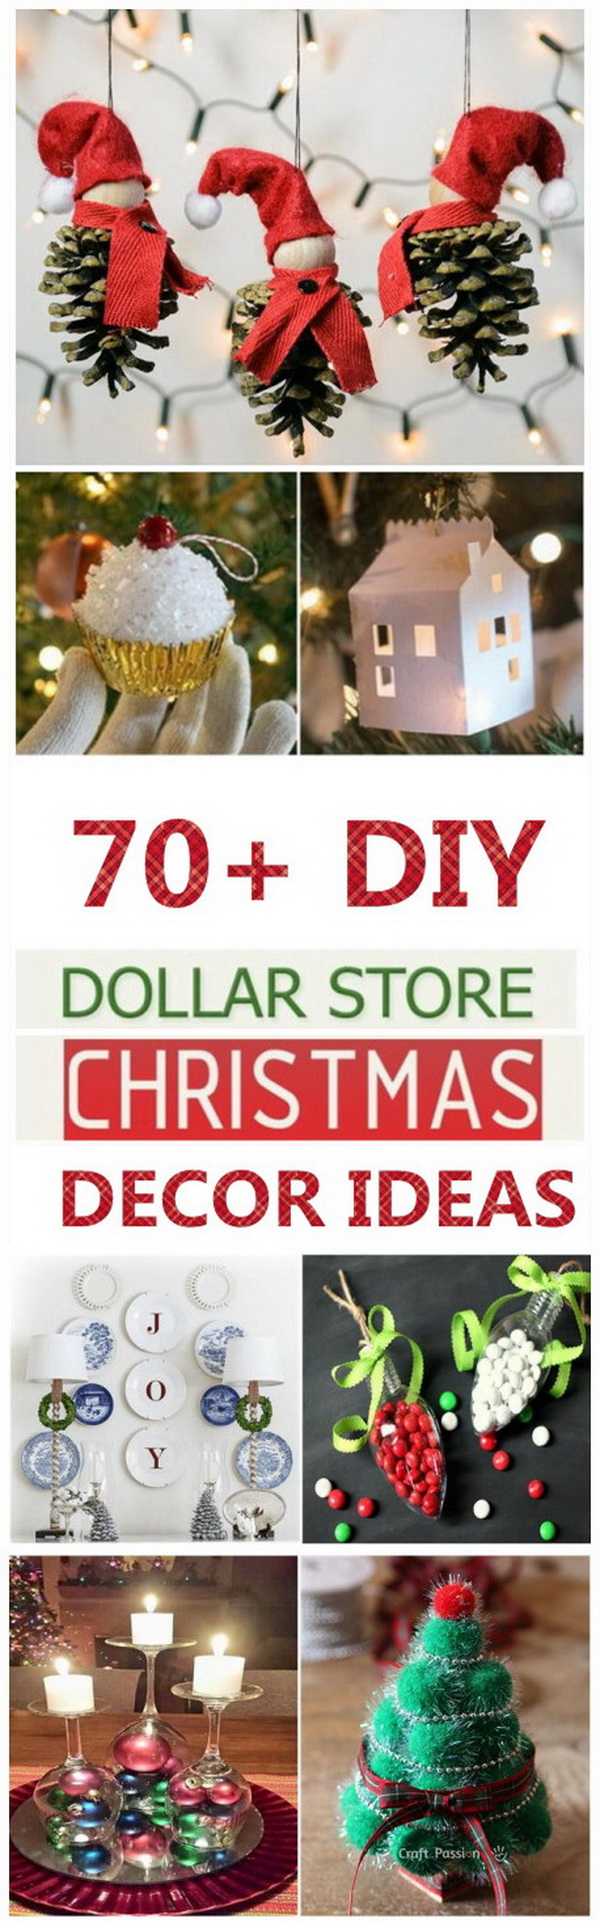 70+ DIY Dollar Store Christmas Decor Ideas. Christmas is one of the most cheerful holidays of the year. It is the season for decorating, gift-giving and crafting, which will cost a lot of money. Because most of the store-bought items are very expensive. But with a little DIY skills and creativity, everything will become easy. Here are some great decorating or gift ideas for Christmas that are madewith items from the Dollar Store!